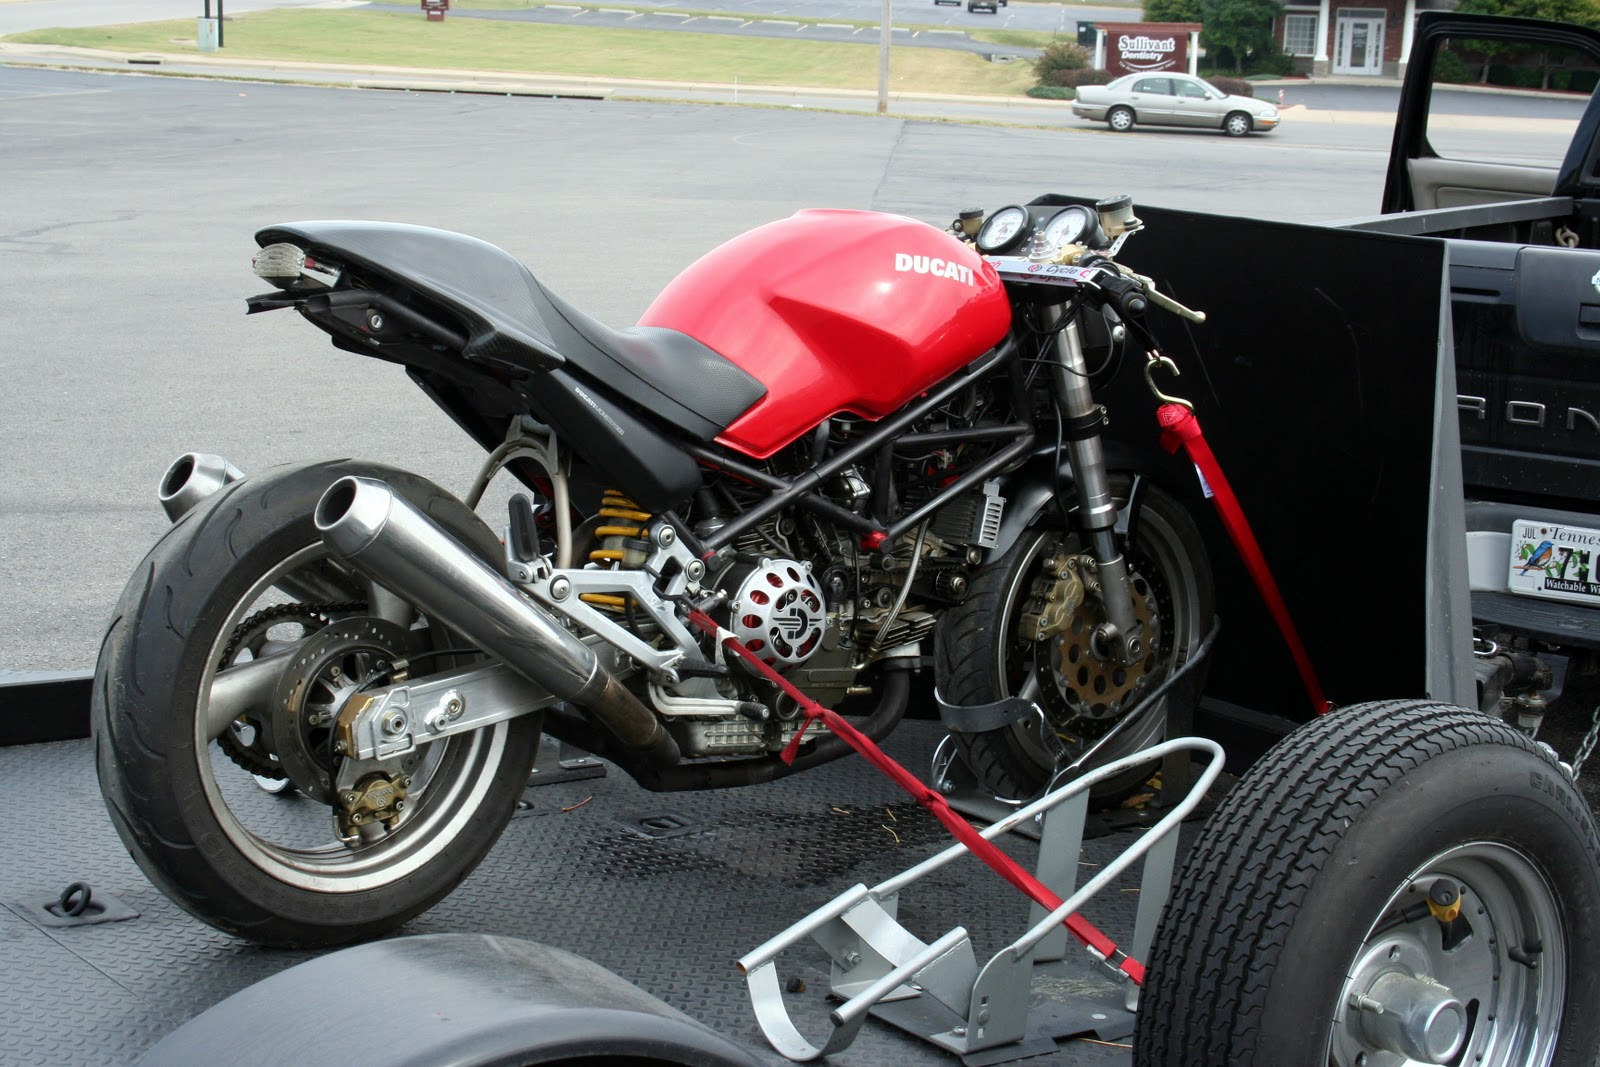 small resolution of new wiring harness 94 ducati 900ss 34 wiring diagram ducati 748 wiring diagram ducati 748 wiring